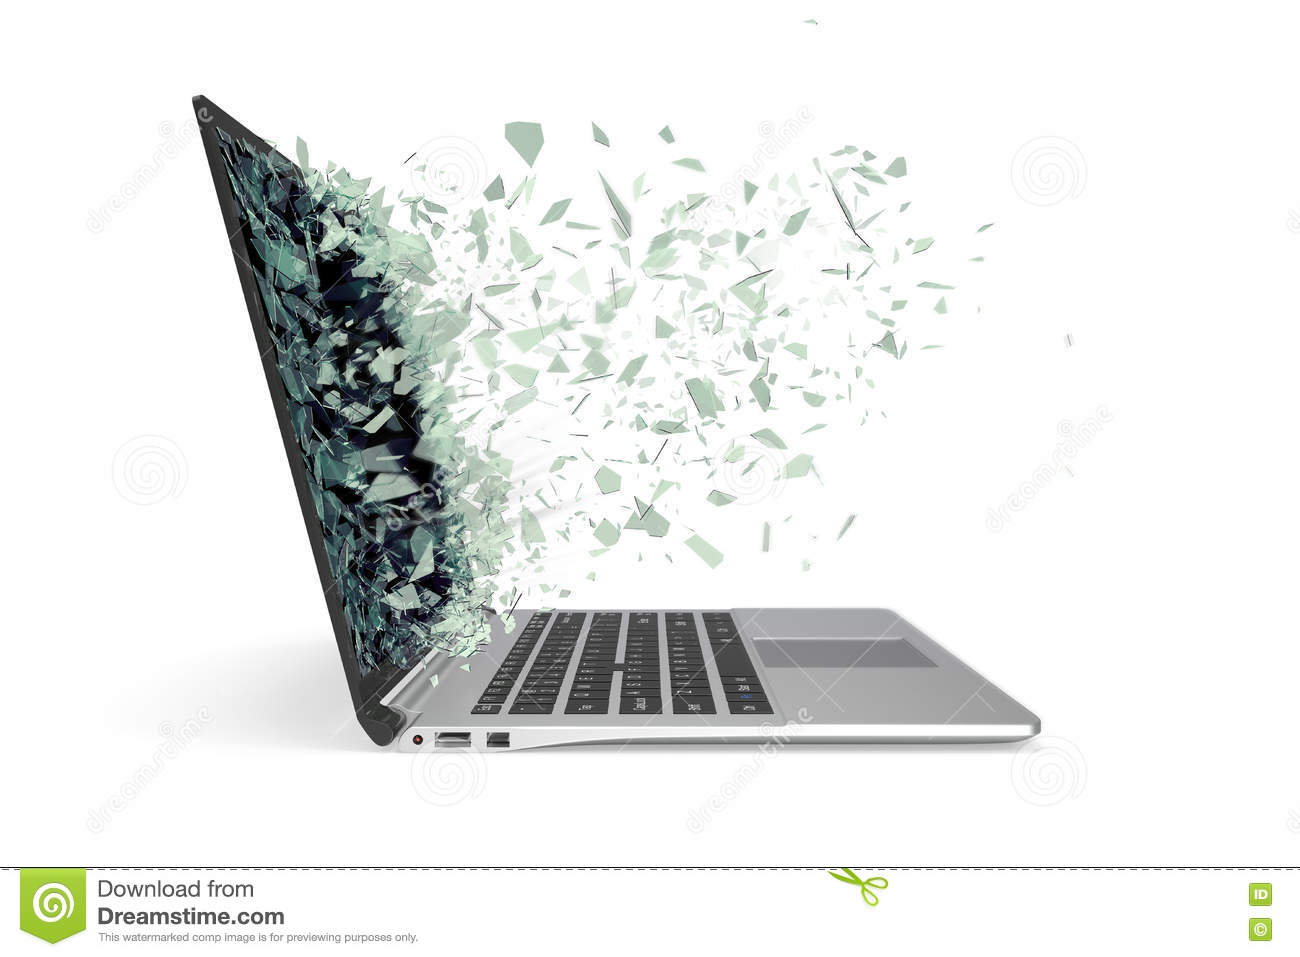 Modern metal laptop with broken screen isolated on white background. 3d illustration